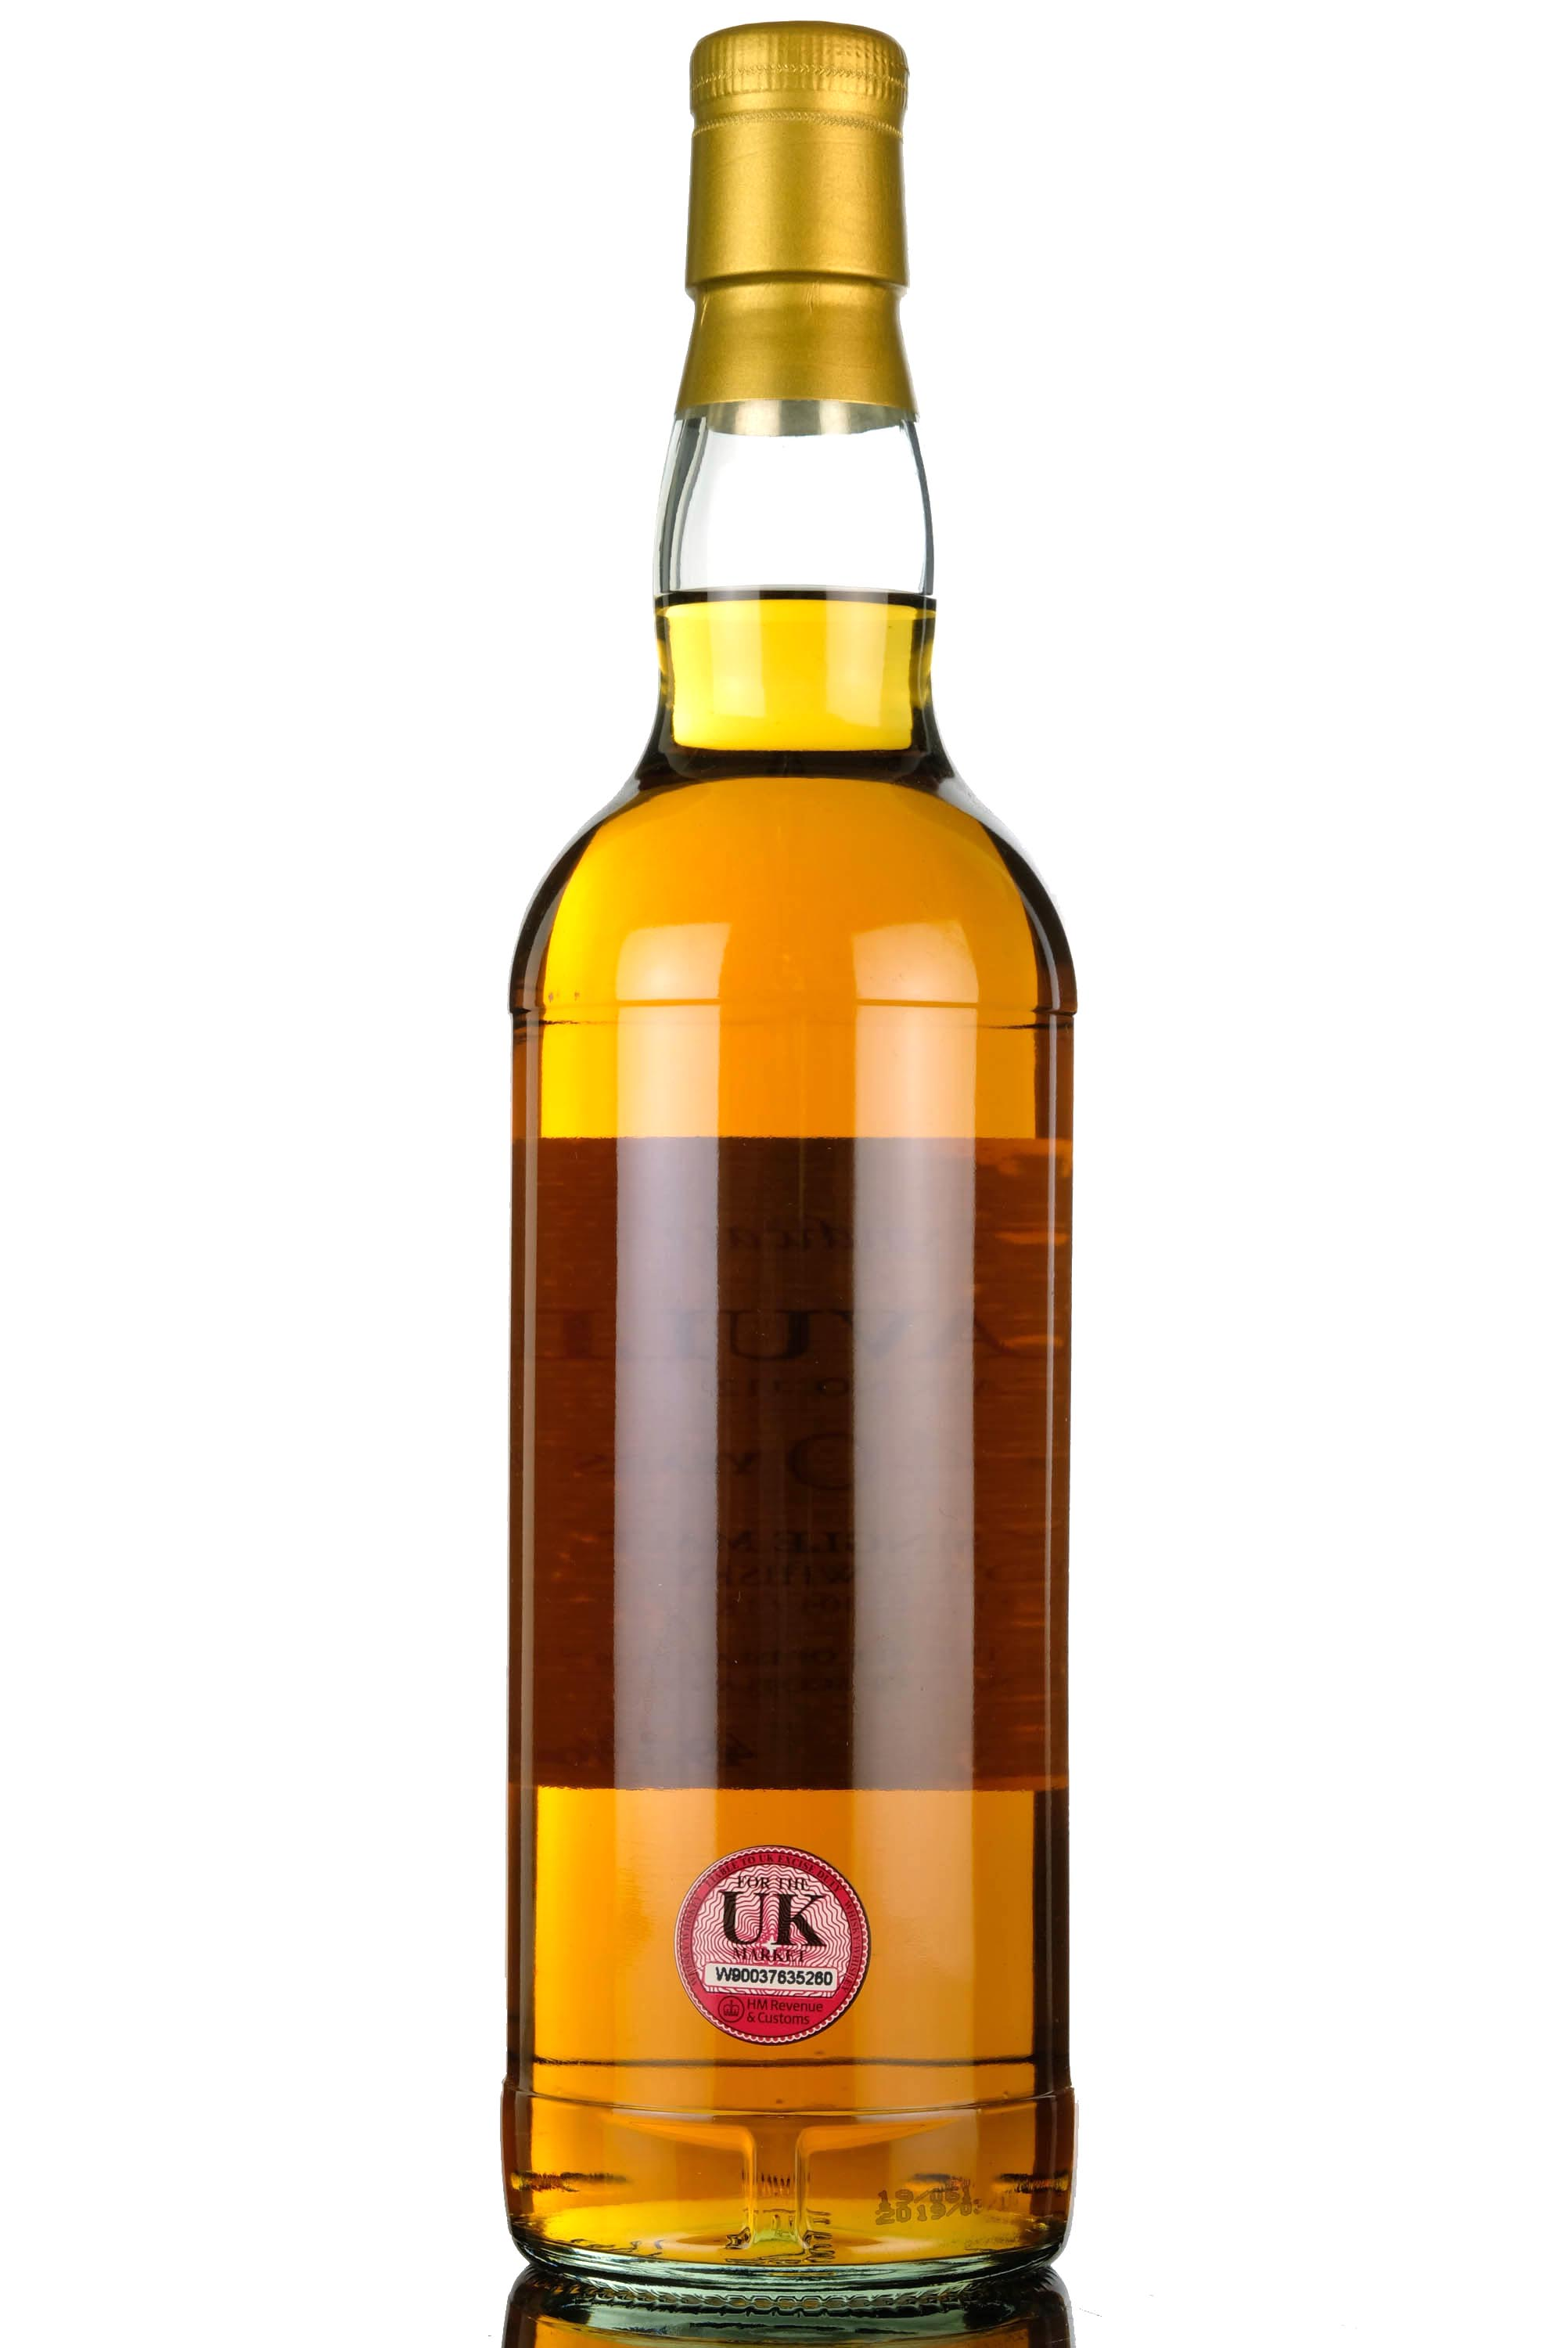 lagavulin 1979-2019 - 40 year old - the syndicate - 188 bottles